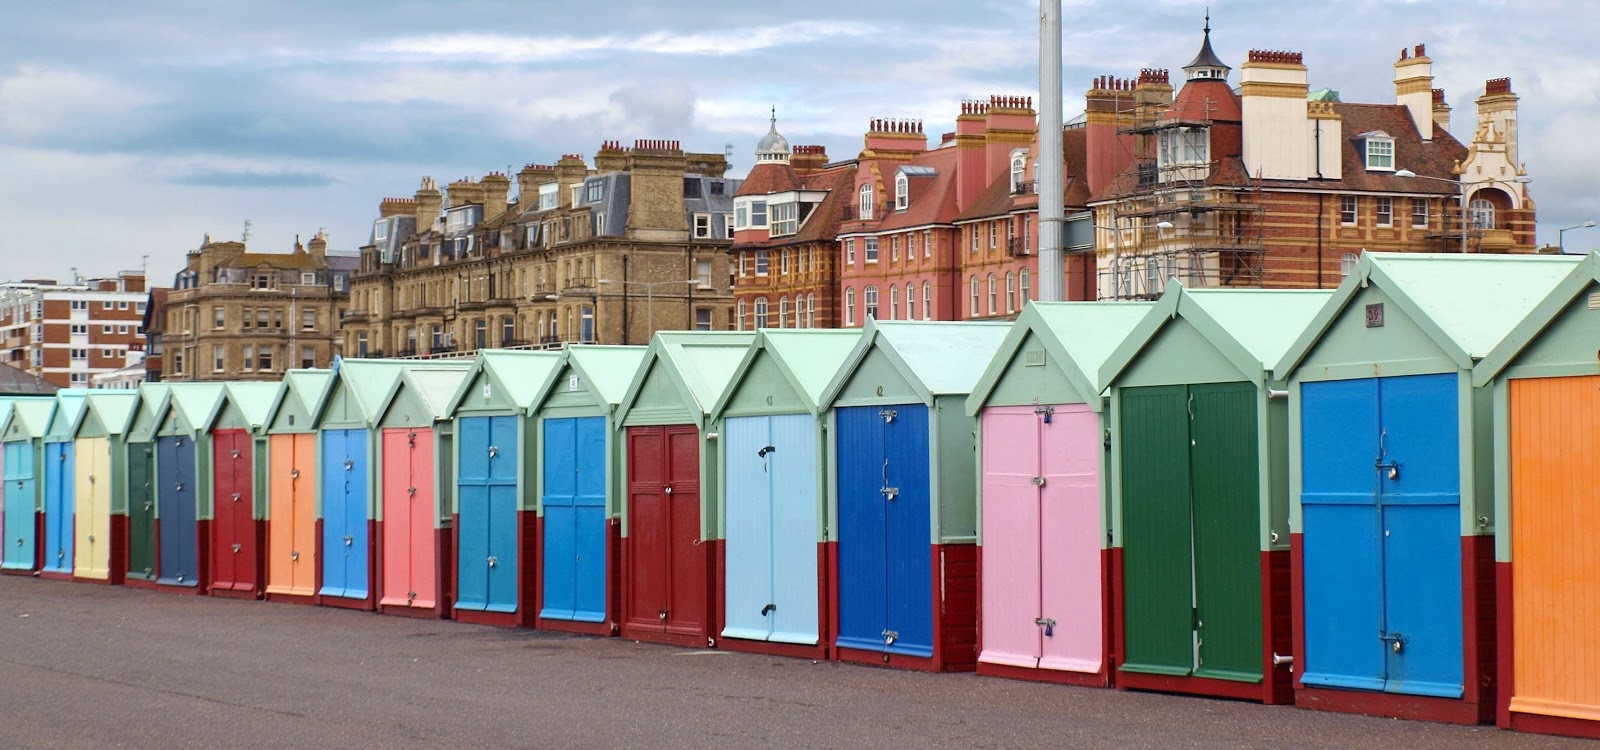 a few multicolored storage spaces in an english town